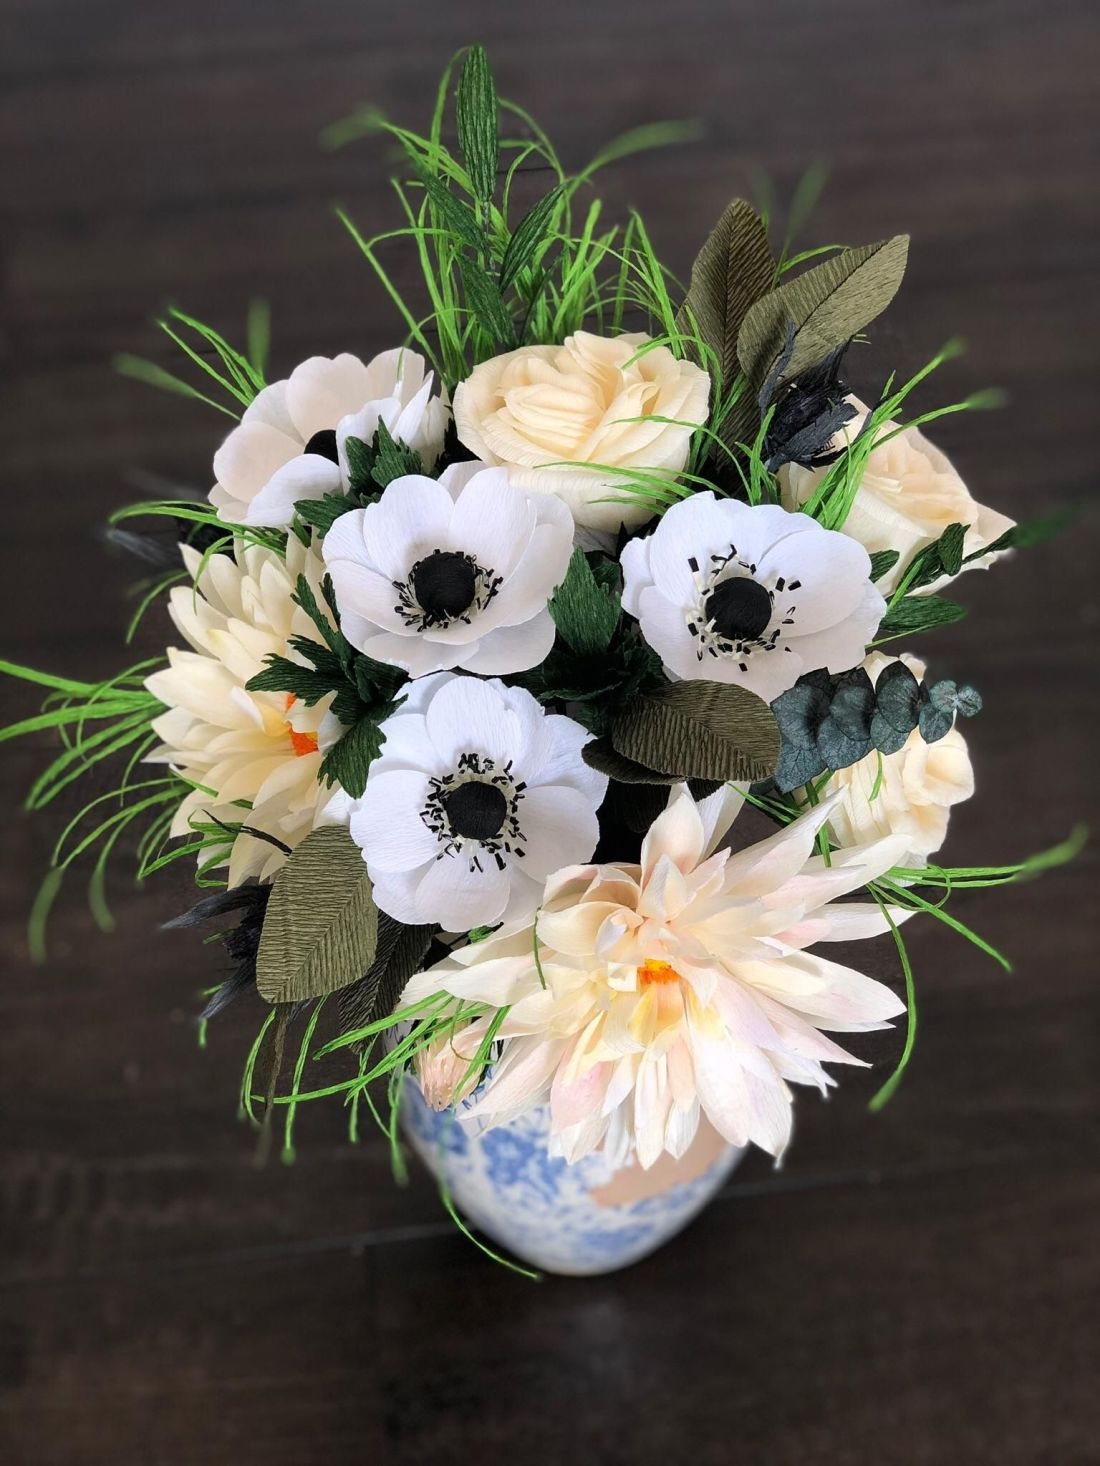 Awesome flowers gardening garden diy home flowers